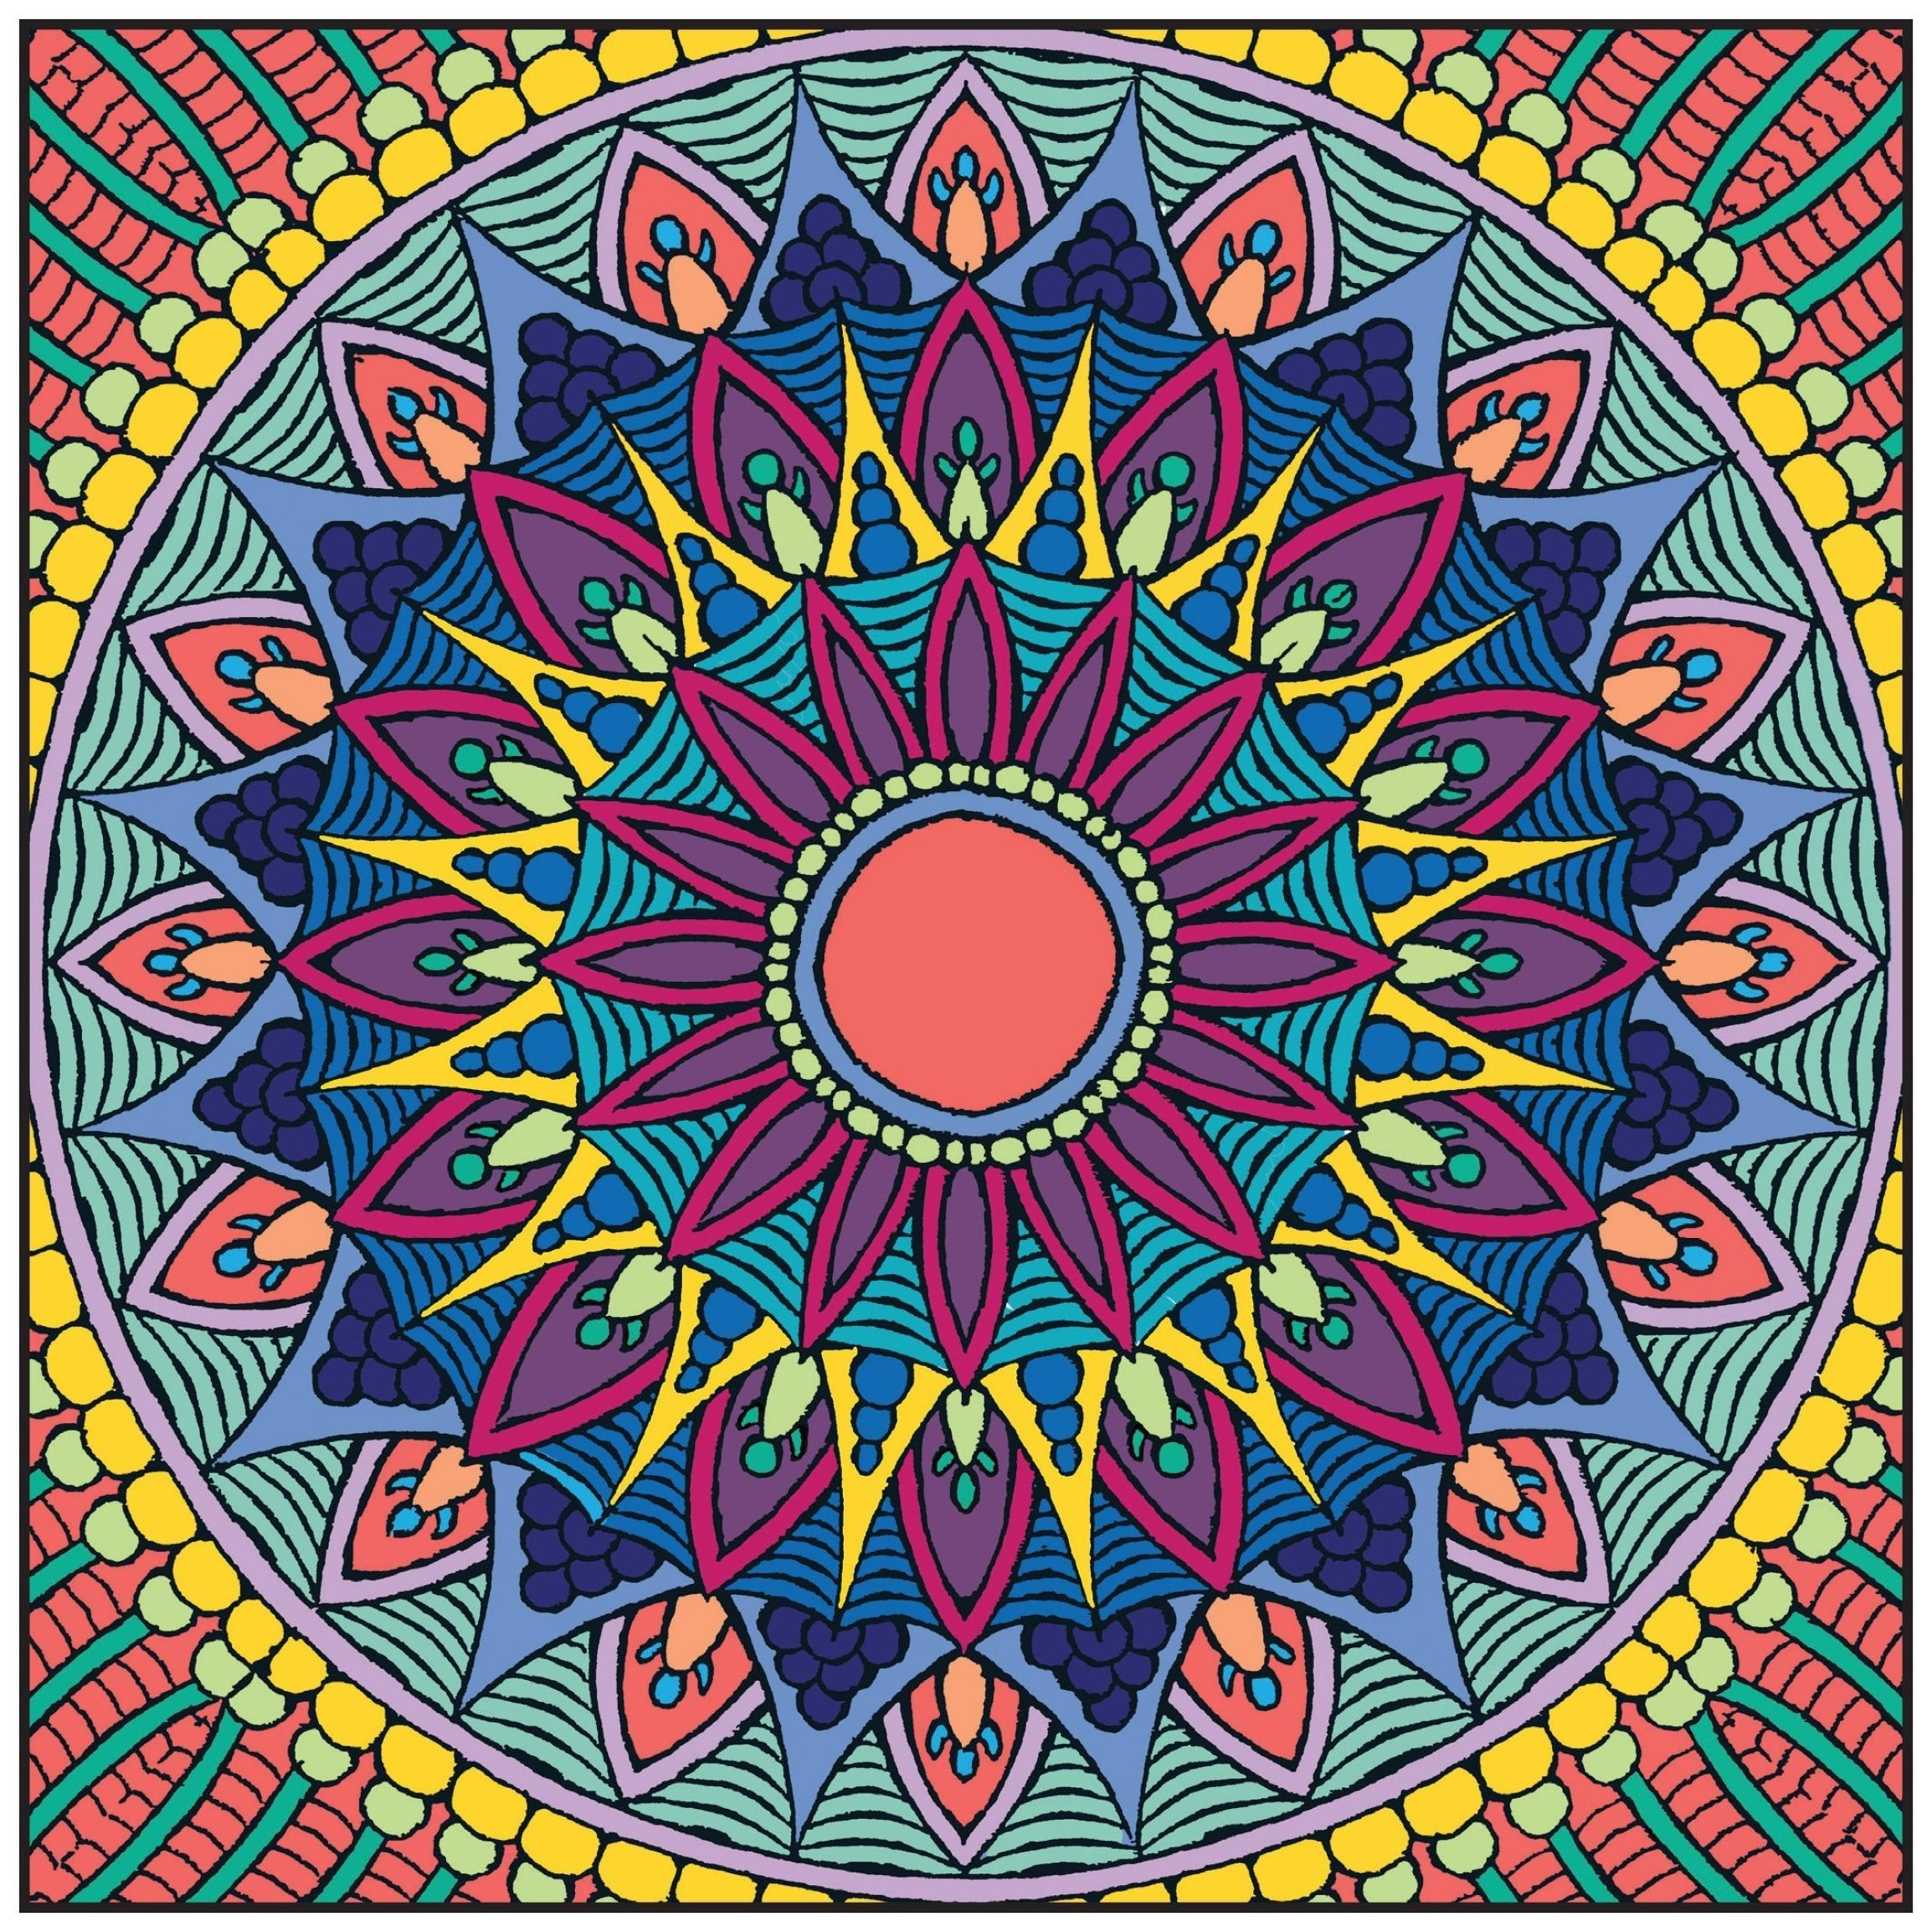 Colored Coloring Pages Shopkins Colouring Pages Mandala Coloring Pages Mandala Coloring